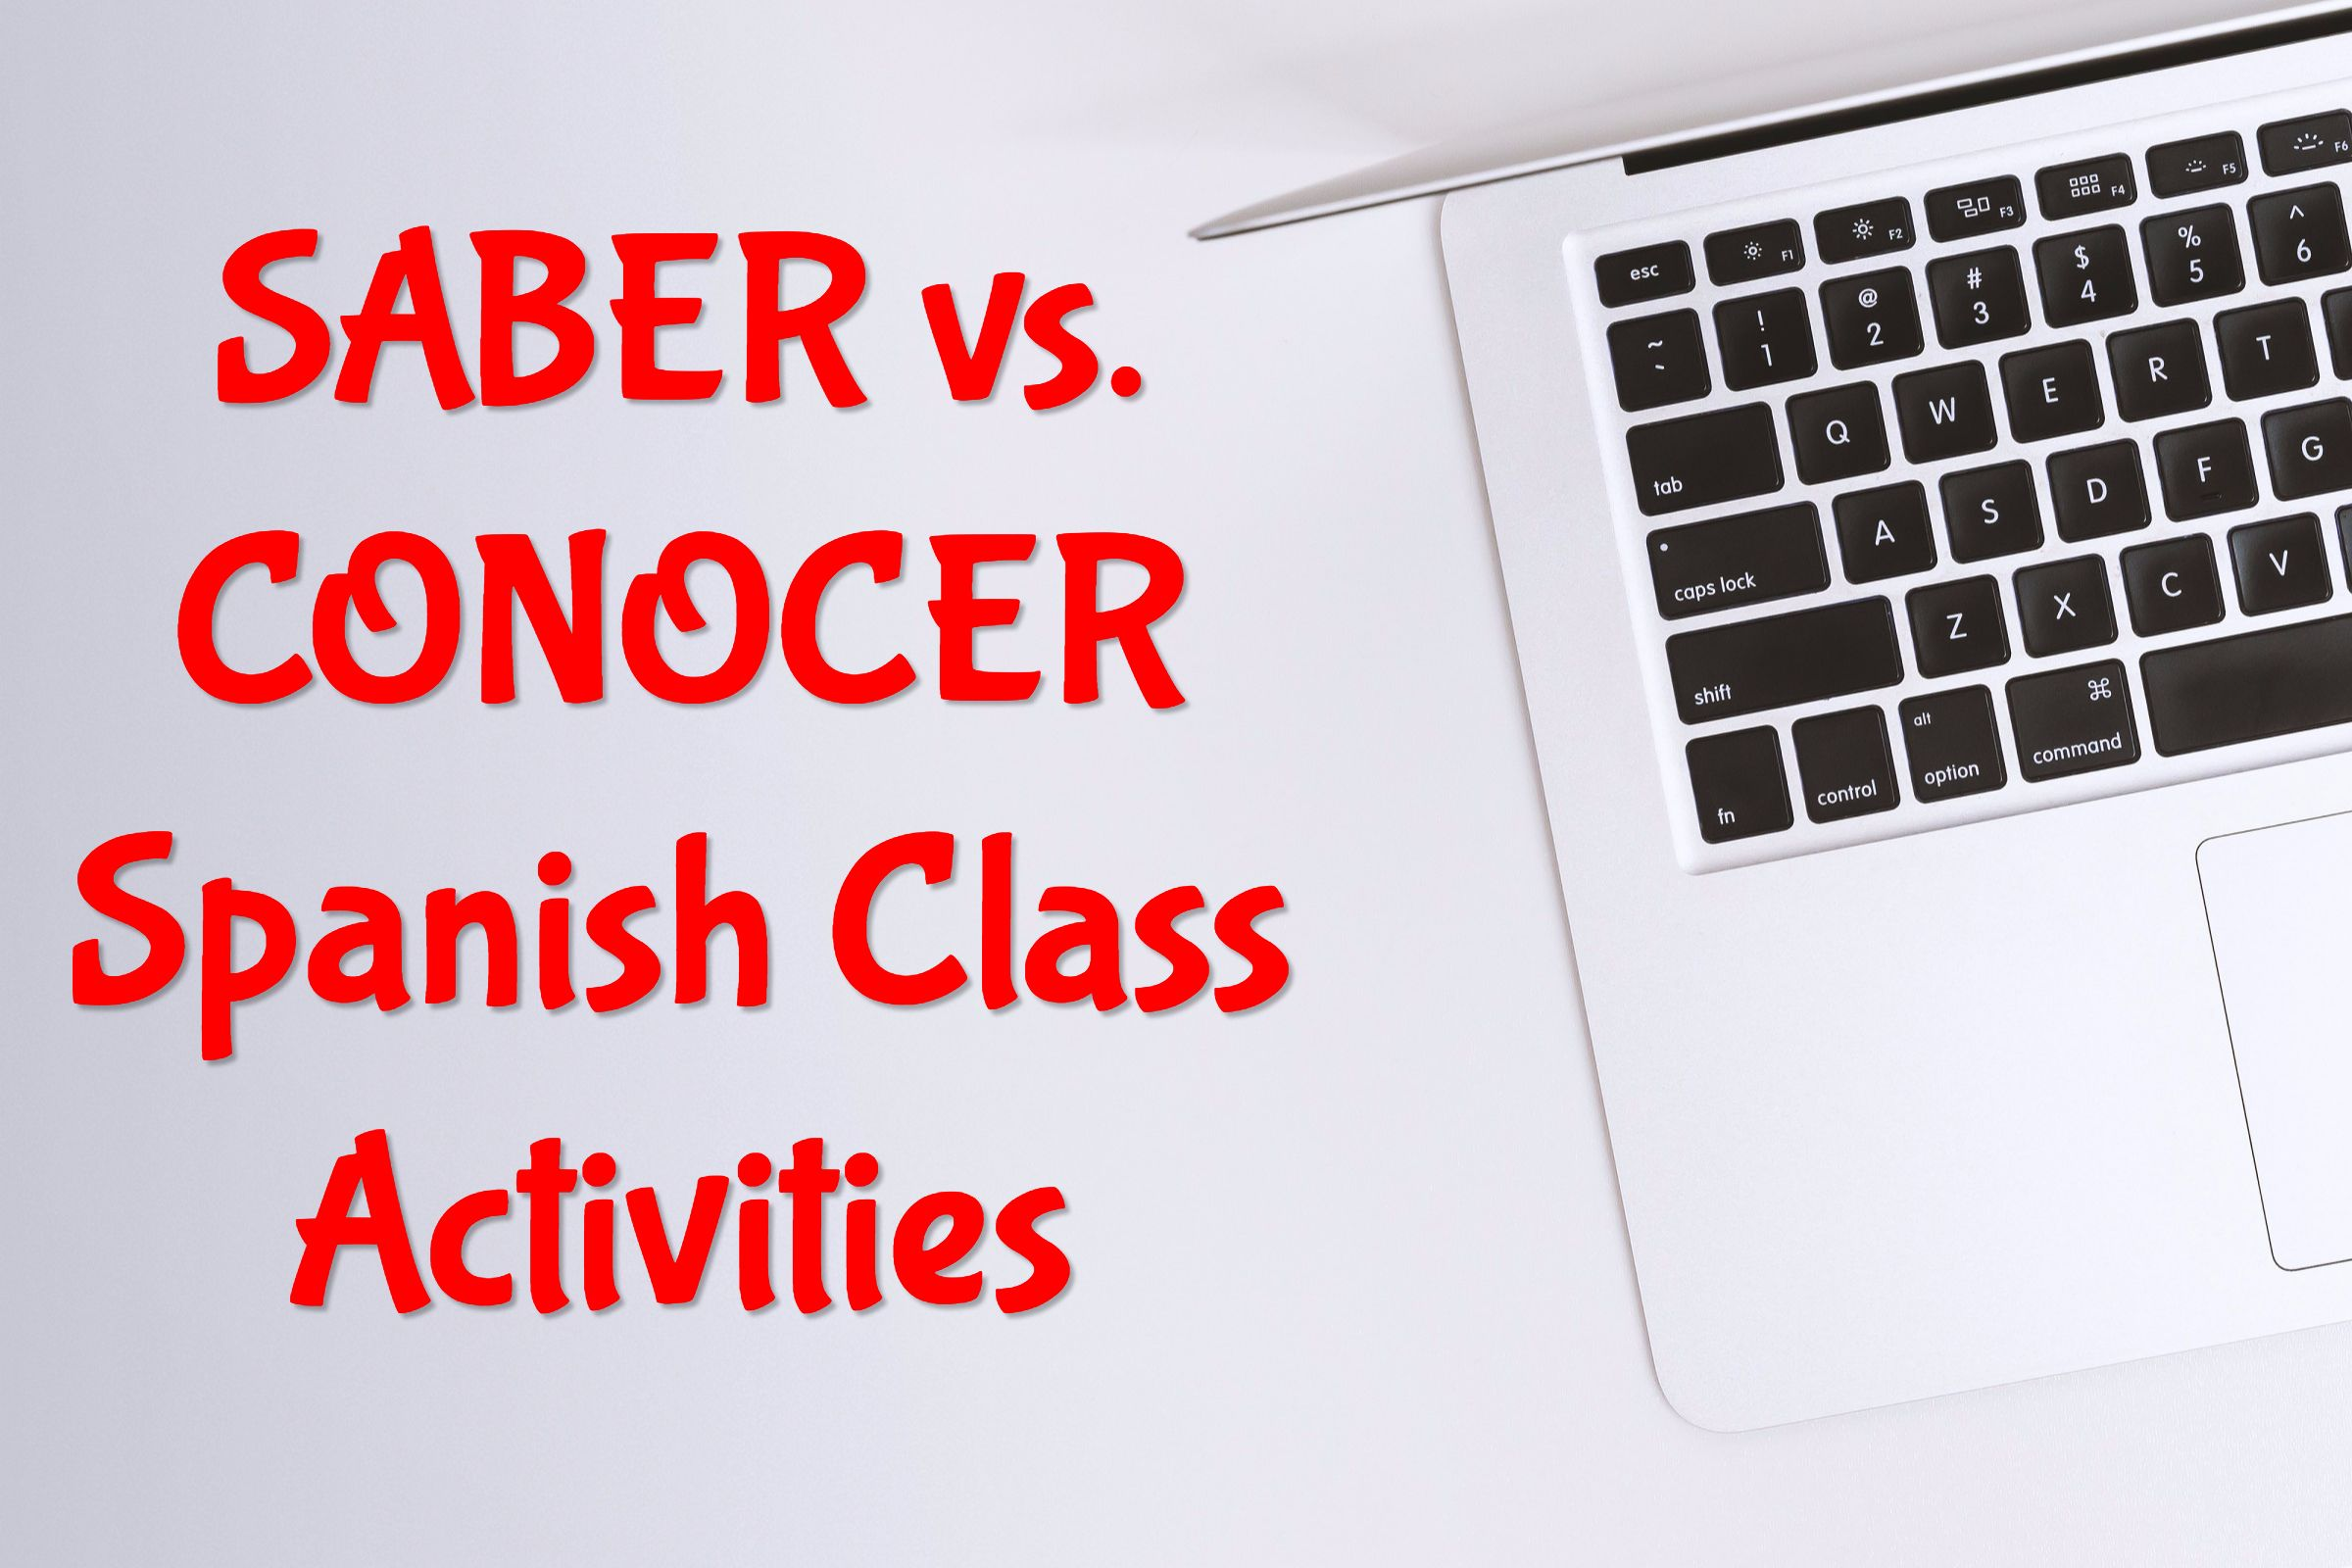 Saber Vs Conocer Spanish Class Activities Class Activities Spanish Teacher Resources Spanish Class